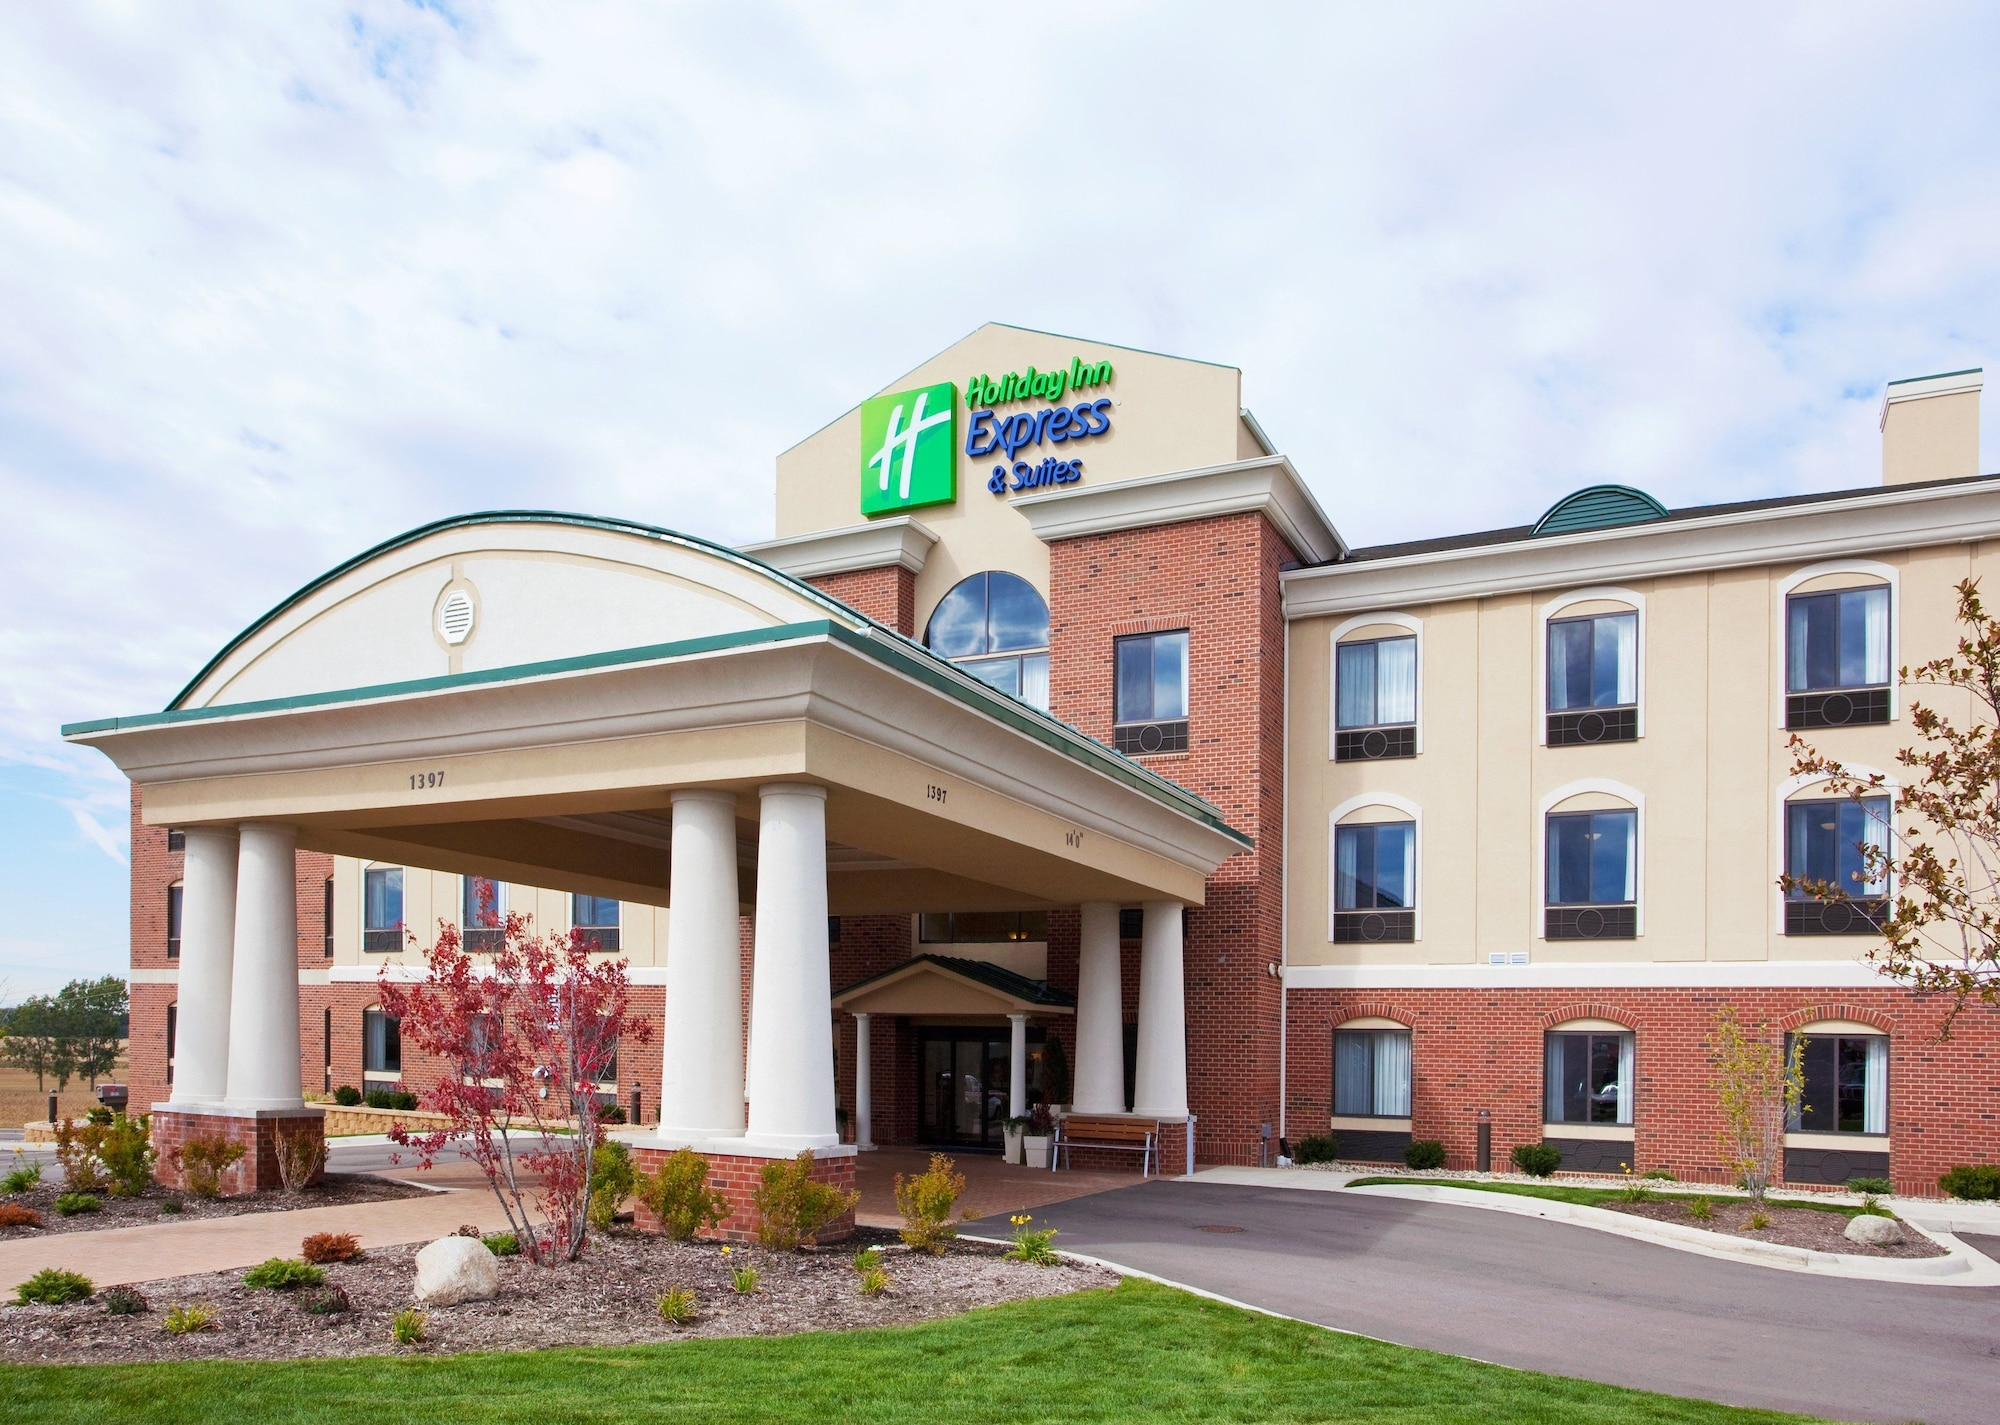 Holiday Inn Express & Suites Howell, Livingston